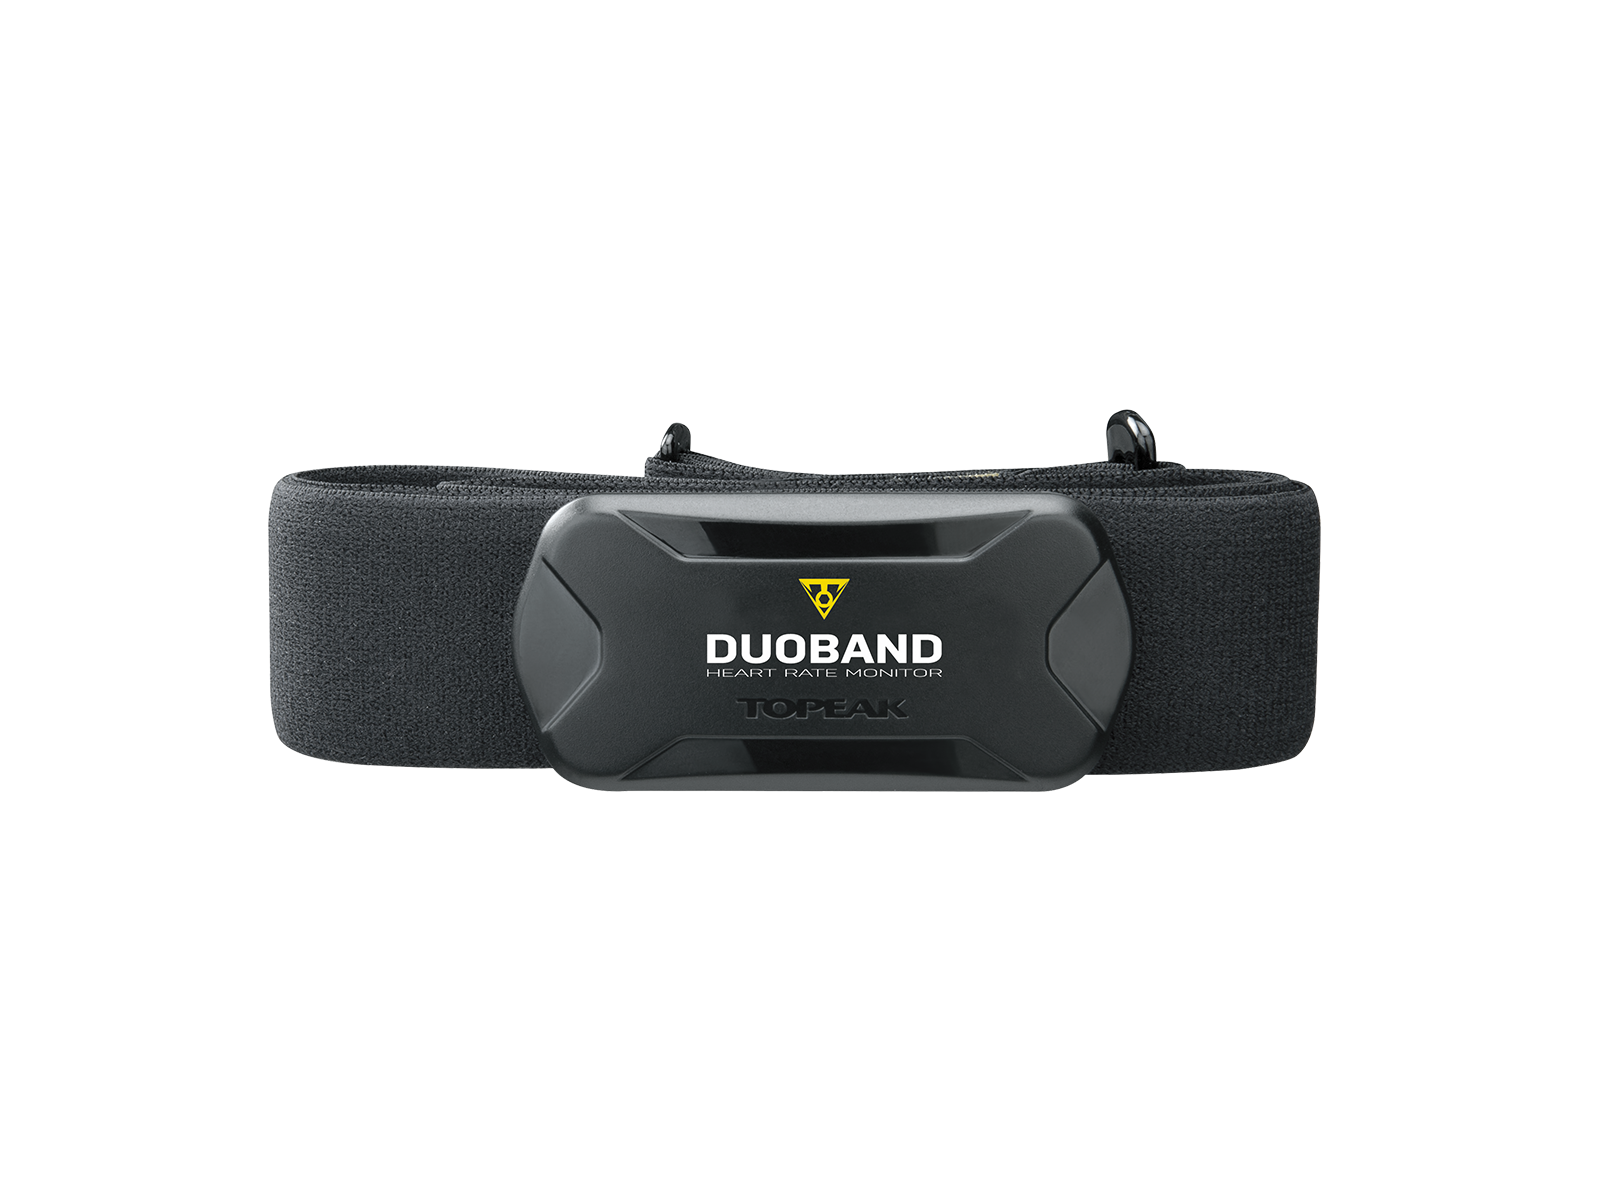 DUOBAND HEART RATE MONITOR | Topeak